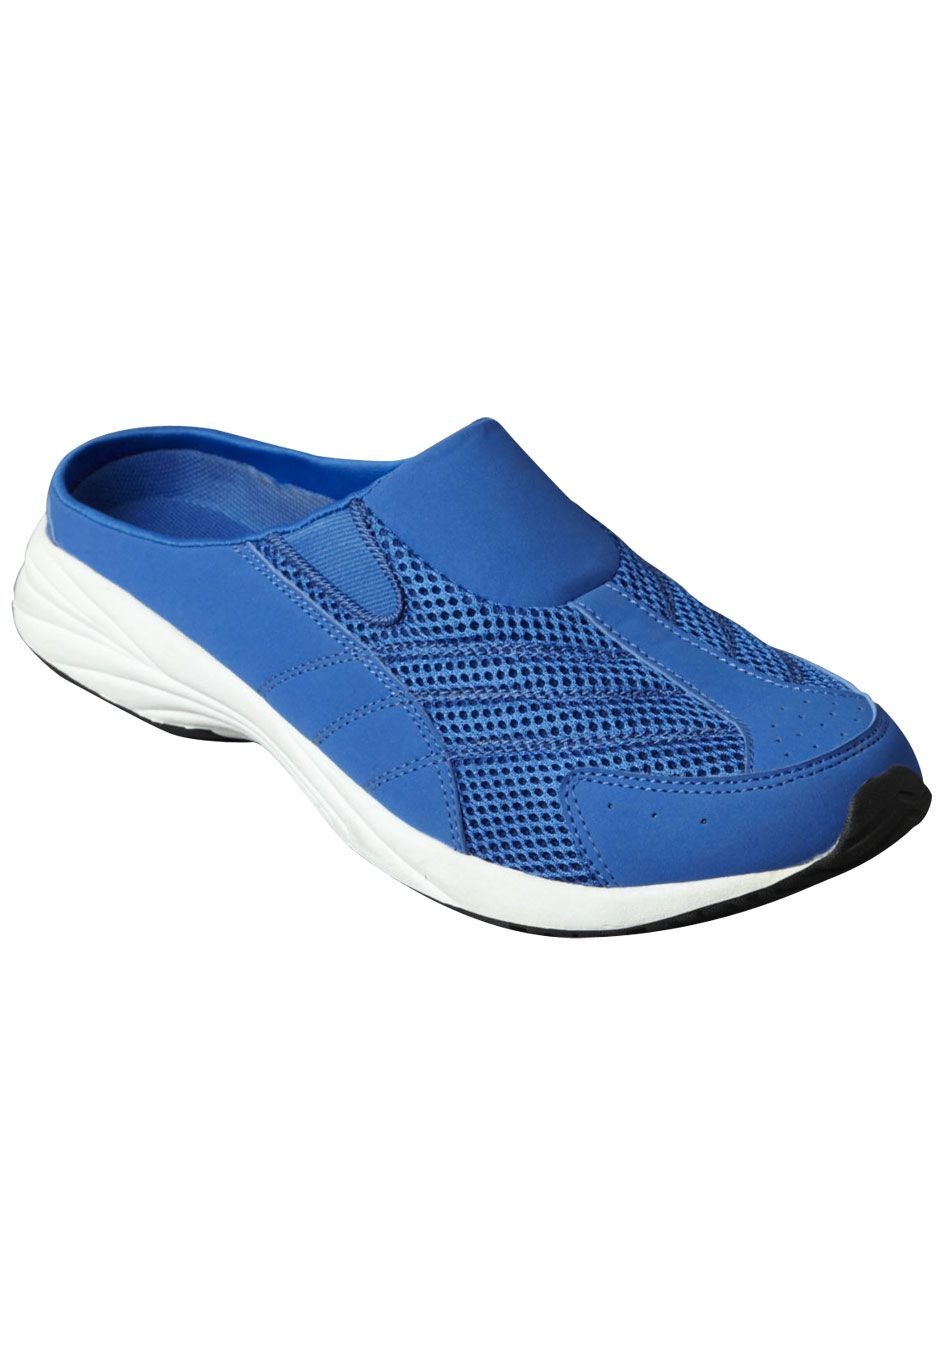 slip on tennis shoes without backs | Skechers Dlites Airy Open ...